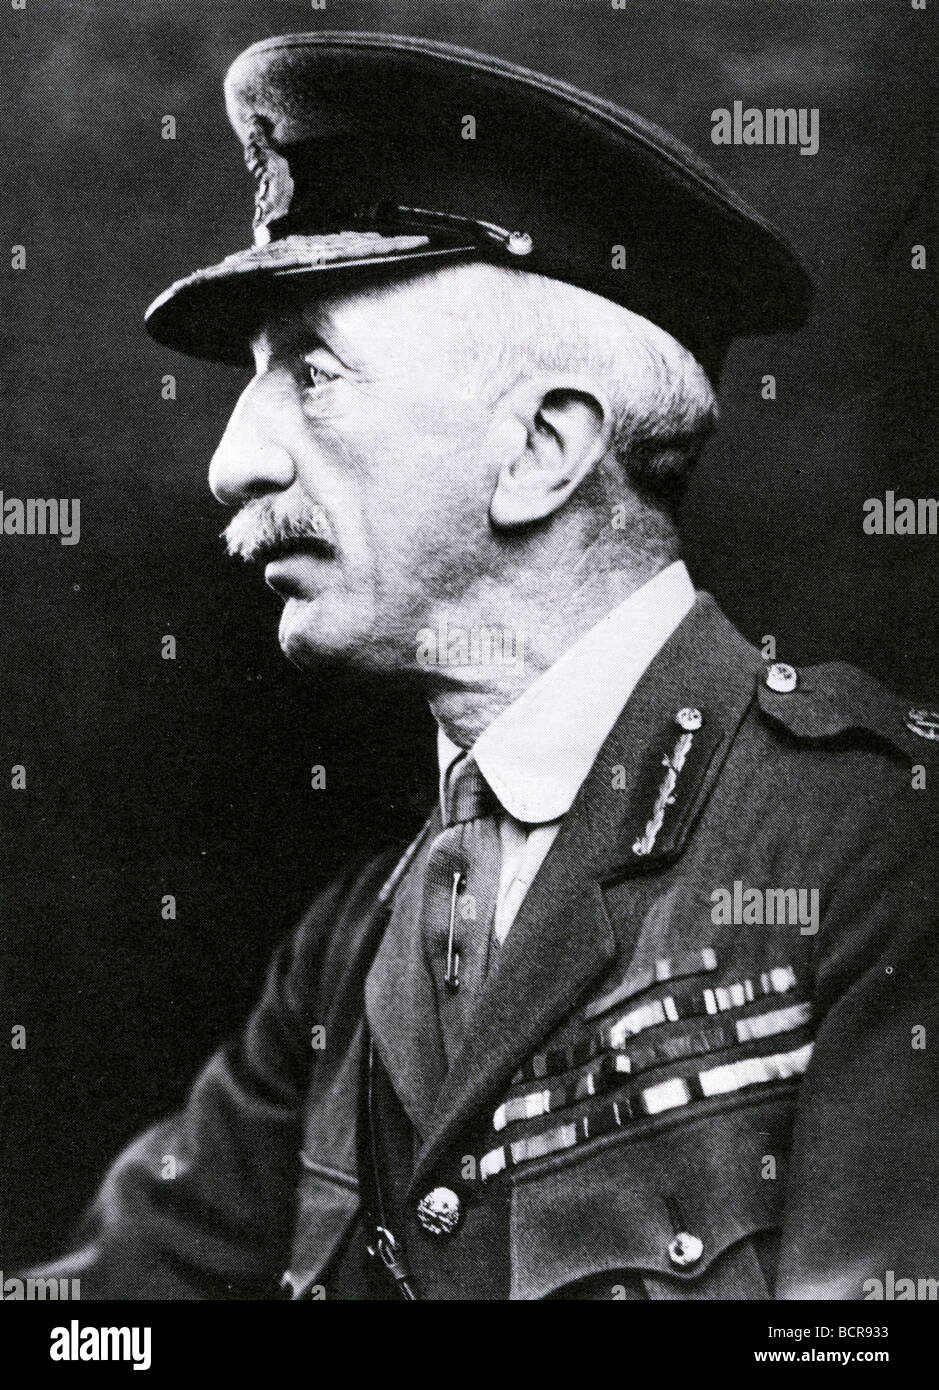 FIELD MARSHALL SIR HENRY WILSON who was killed by the IRA in 1922 - Stock Image